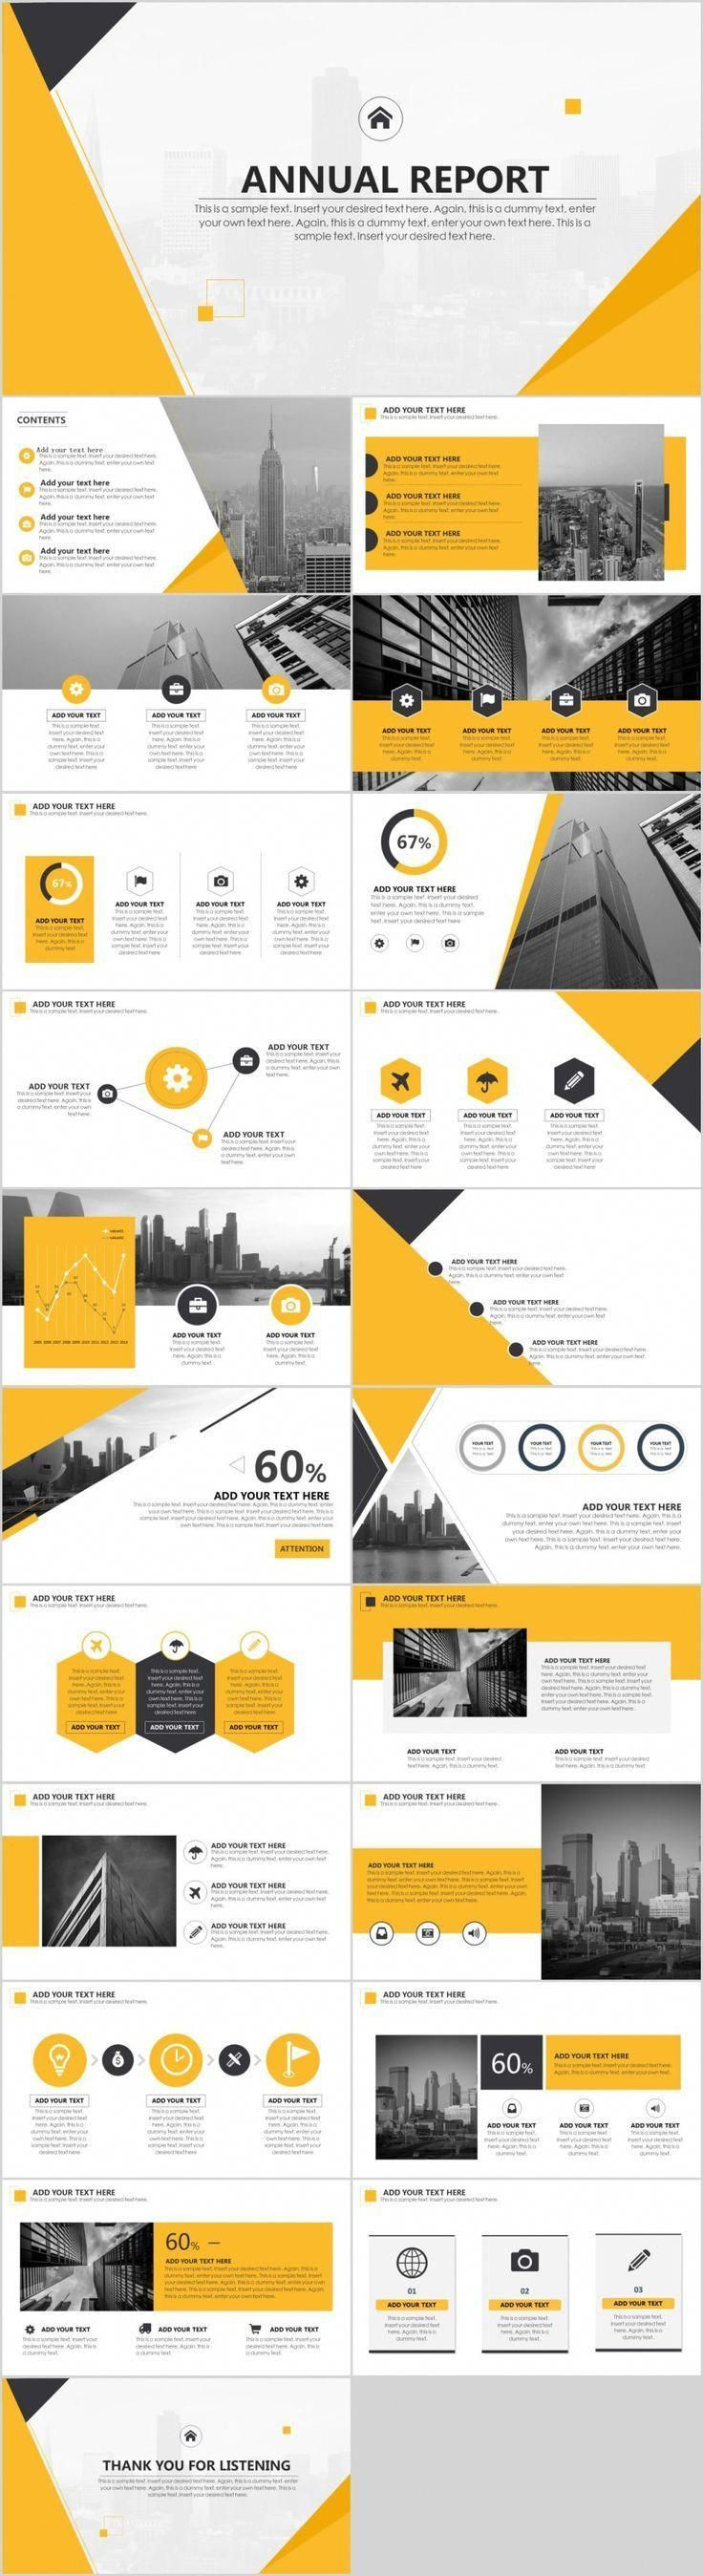 Yellow annual report PowerPoint template - #annual #culture #PowerPoint #Report #Template #yellow #annualreports